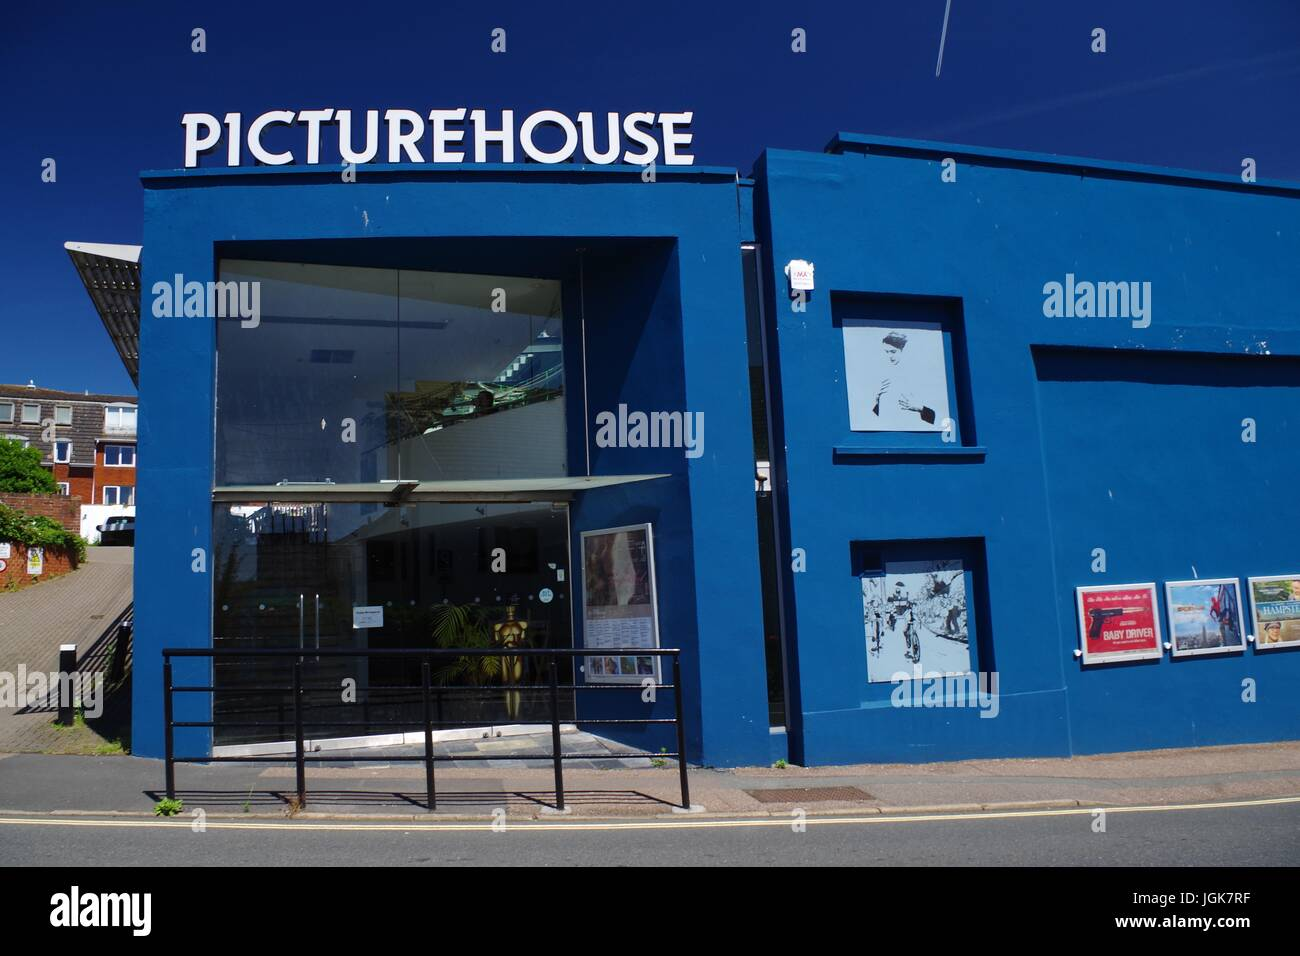 Picturehouse Cinema Building with Wall Art. Exeter, Devon, UK. July, 2017. - Stock Image